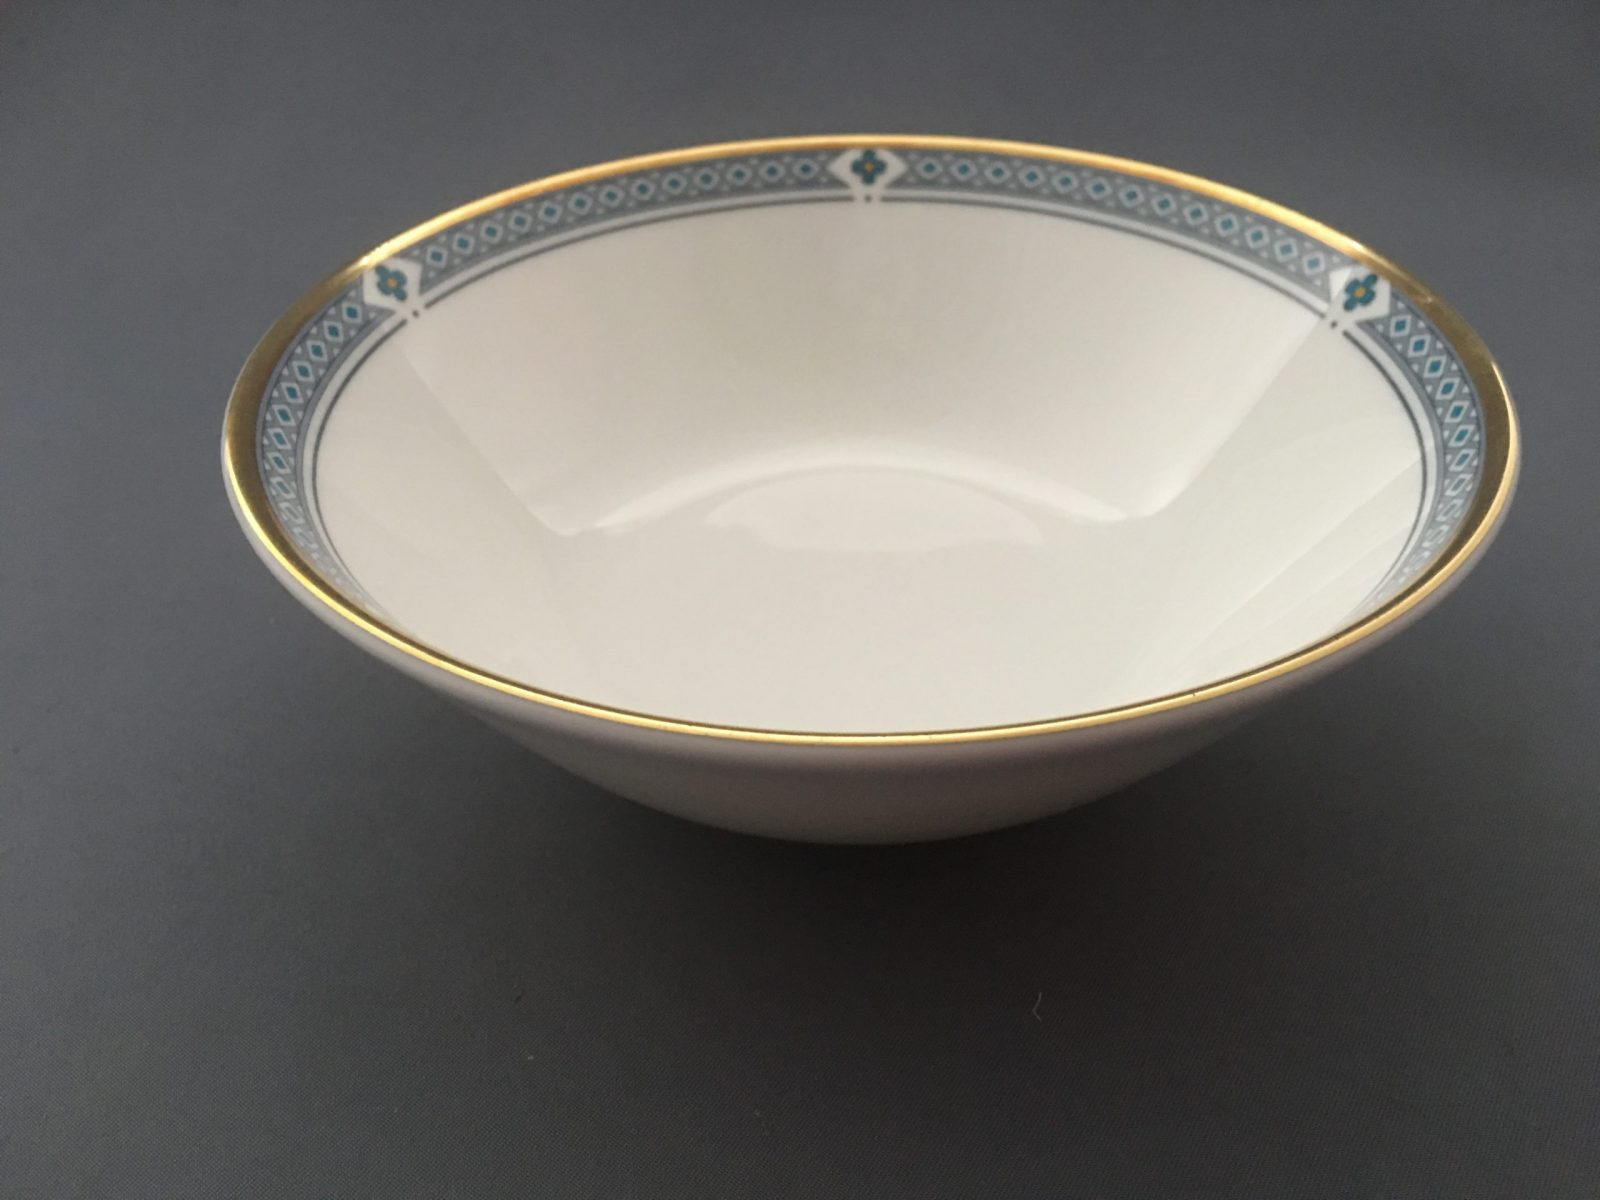 Marks Spencer Felsham 6 Cereal Bowl Replace Your Plates